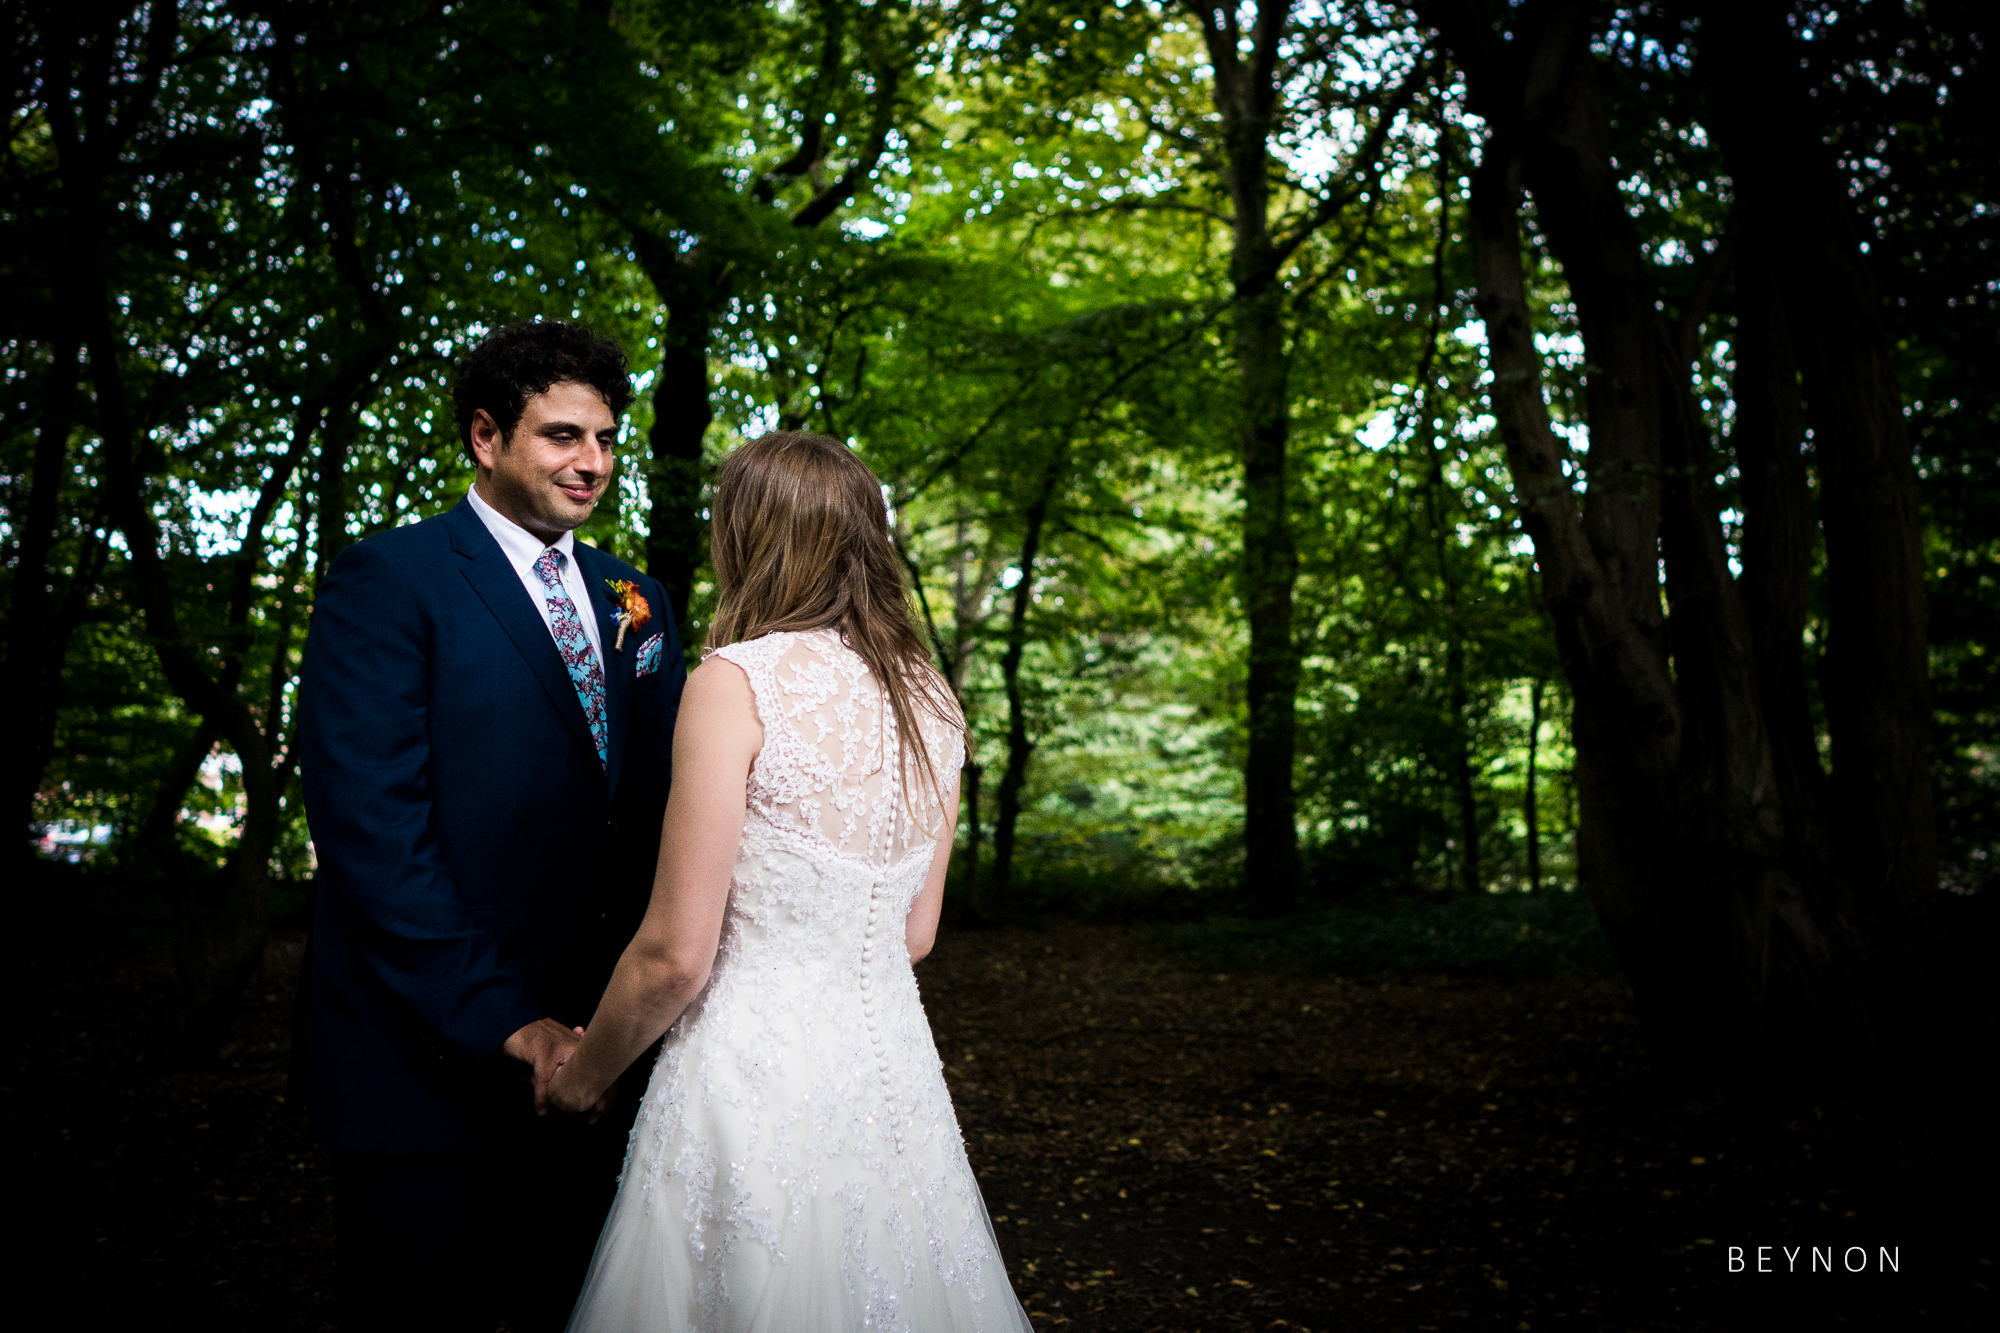 The bride and groom spend some time together